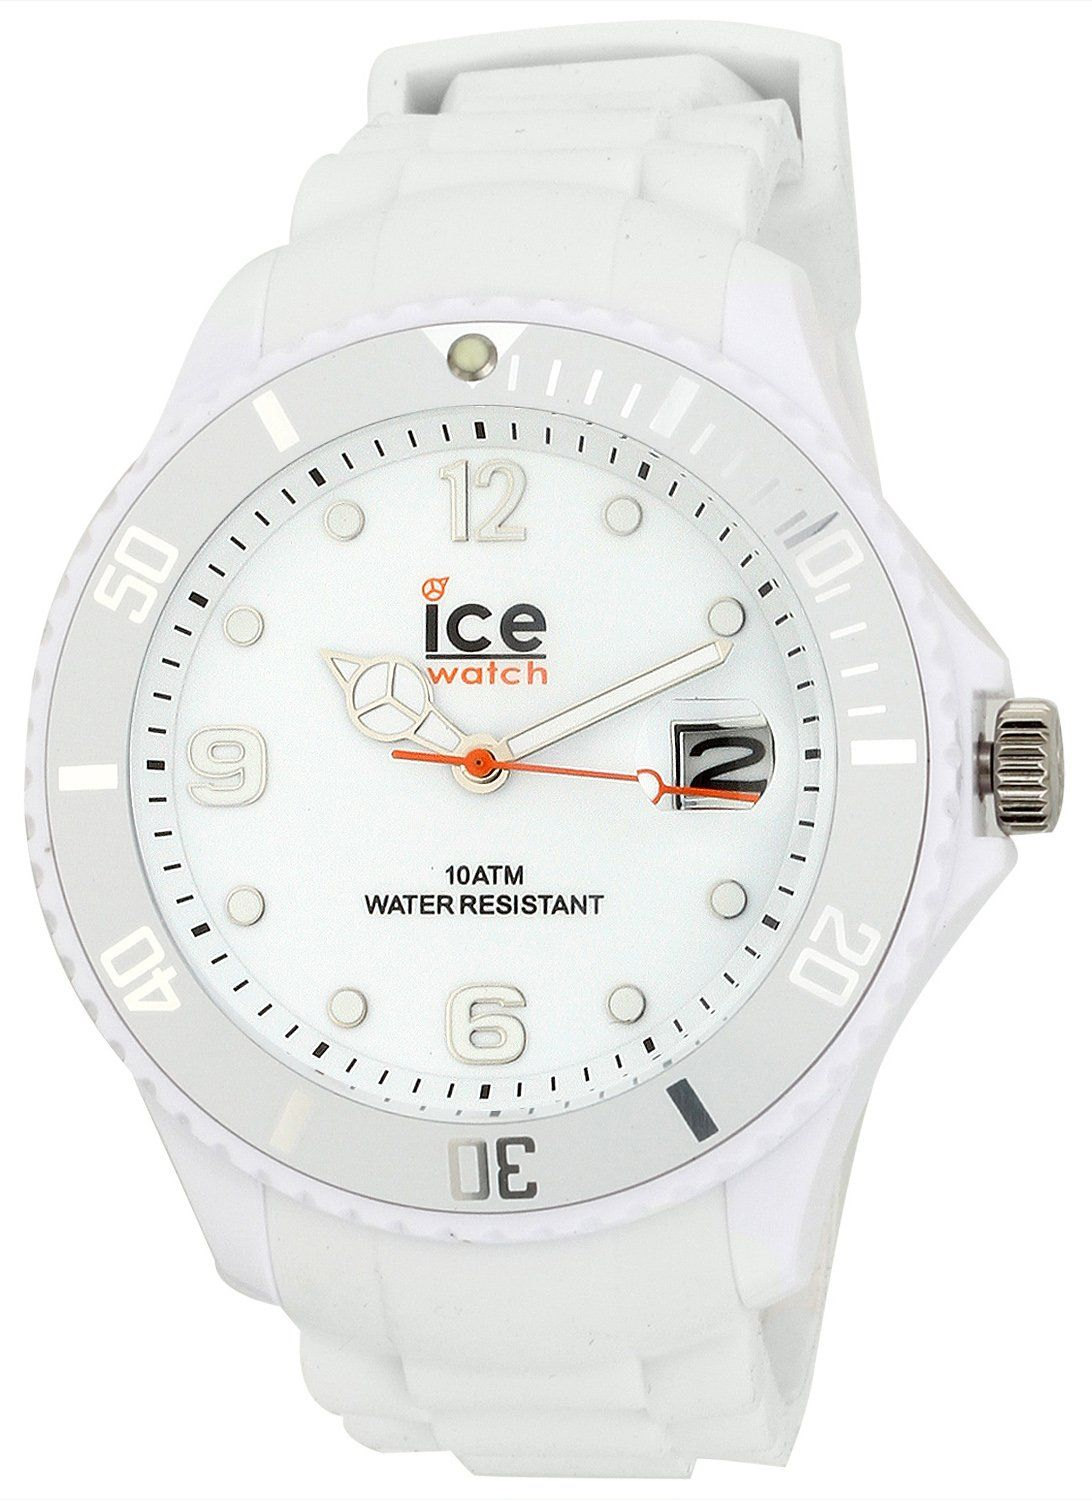 Ice Watch Men's SIWEBBS11 Sili Forever Collection White Watch. White silicone band. Luminous hands. Date display. Stainless steel caseback. Water resistant to 165 feet (50 M): suitable for swimming and showering.